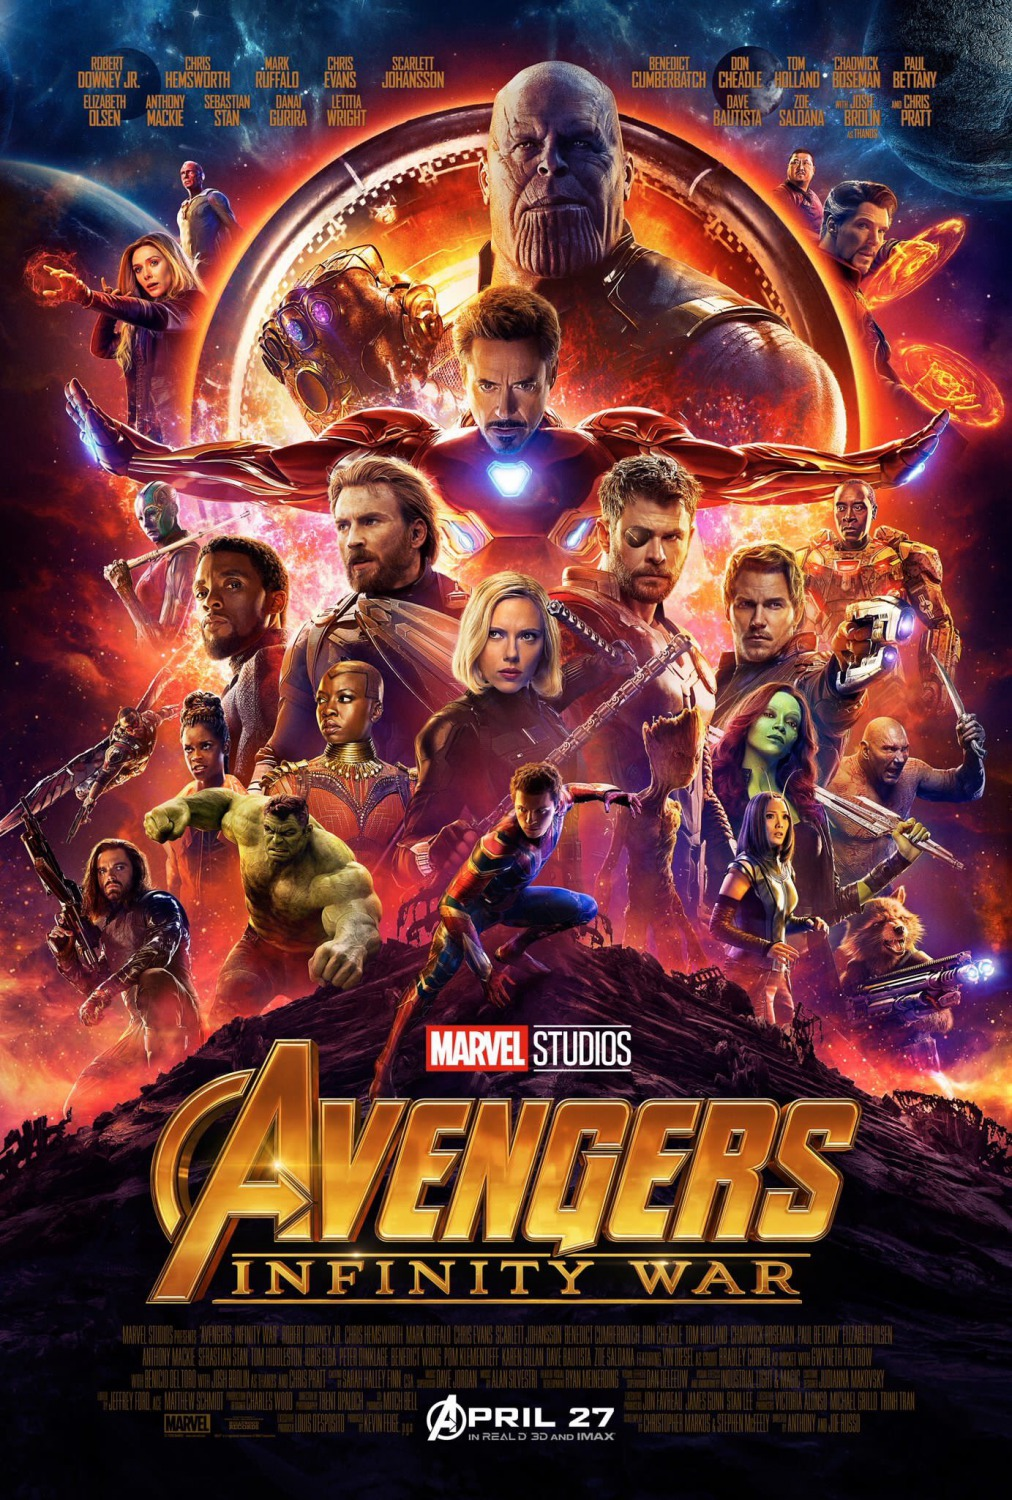 Extra Large Movie Poster Image for Avengers: Infinity War (#2 of 2)